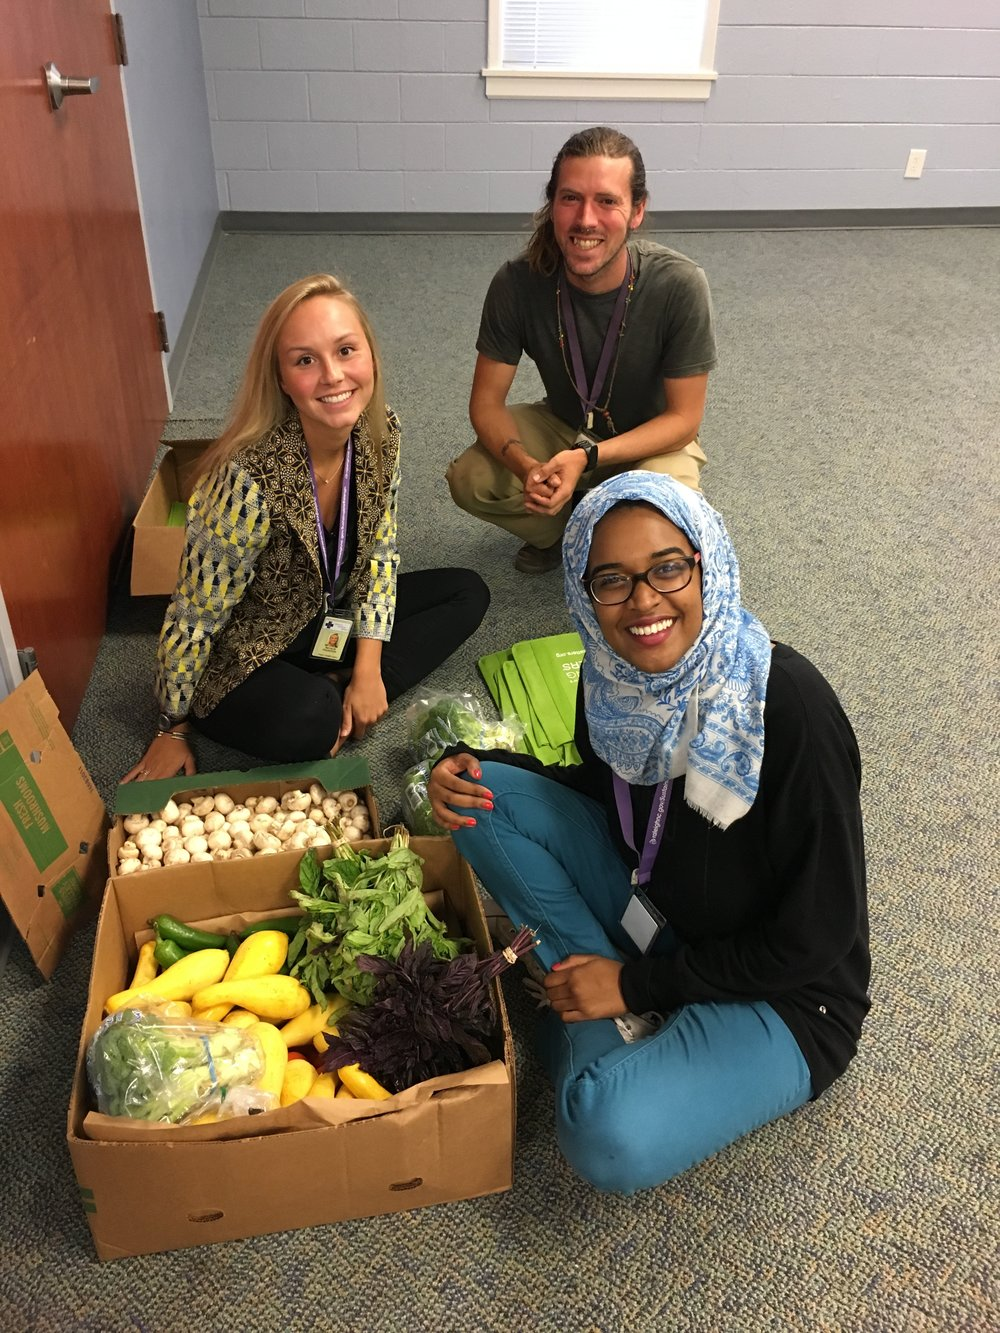 L to R: Natalie Holdstock, Garden & Wellness Coordinator Jesse Crouch, and Doha Medani helping fill bags of produce for Cooking Matters participants to take home.